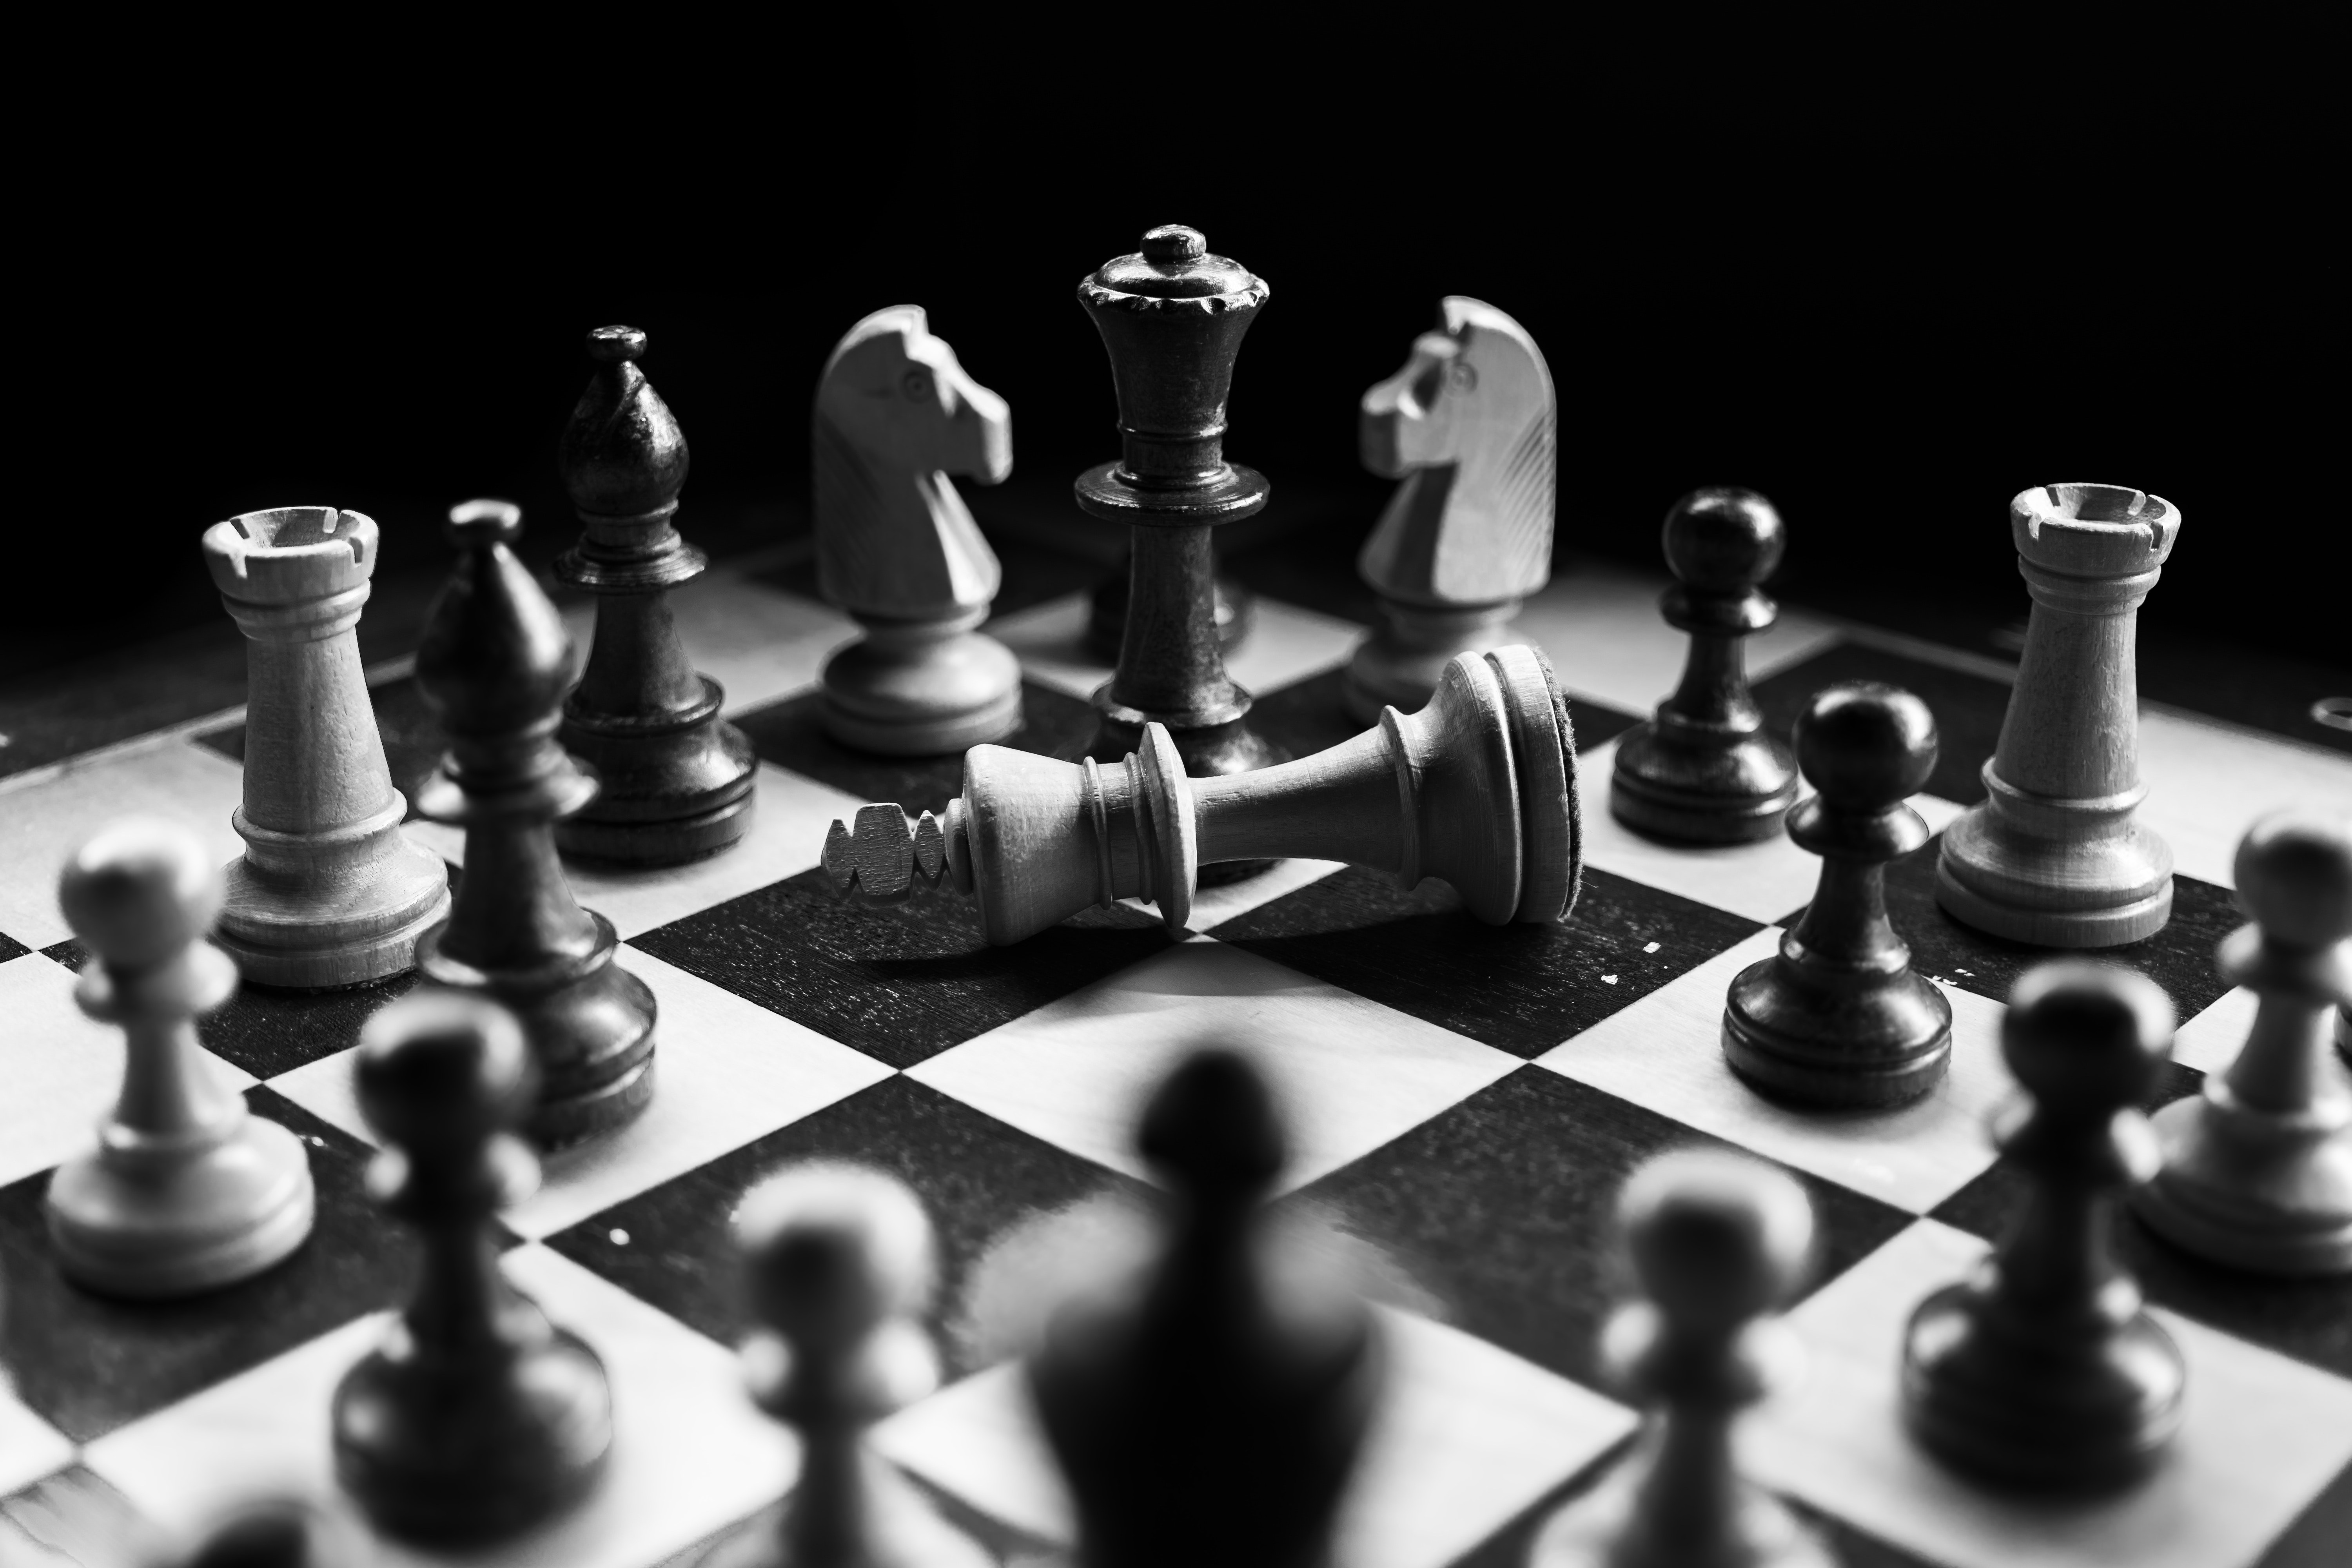 grayscale-photography-of-chessboard-game-957312